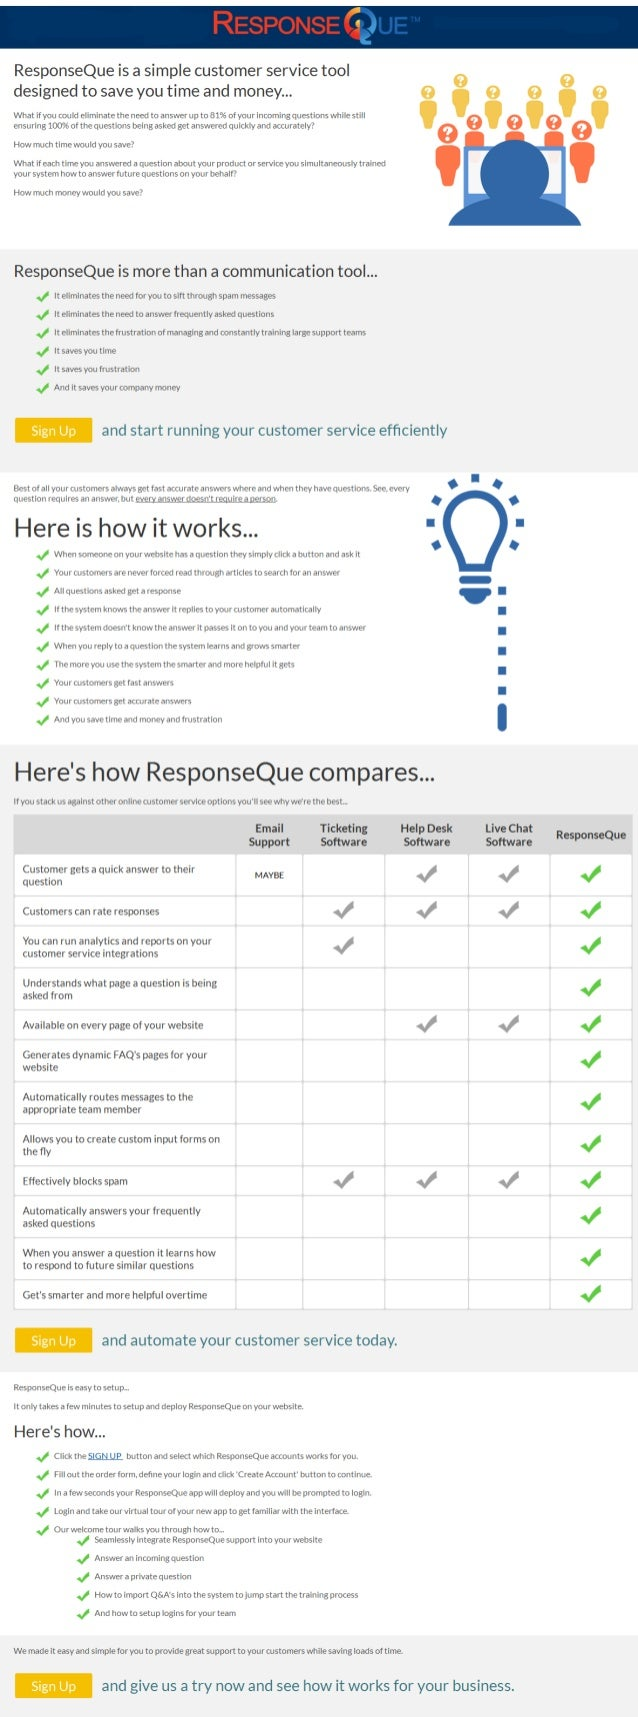 How to automate your online customer service with ResponseQue.com